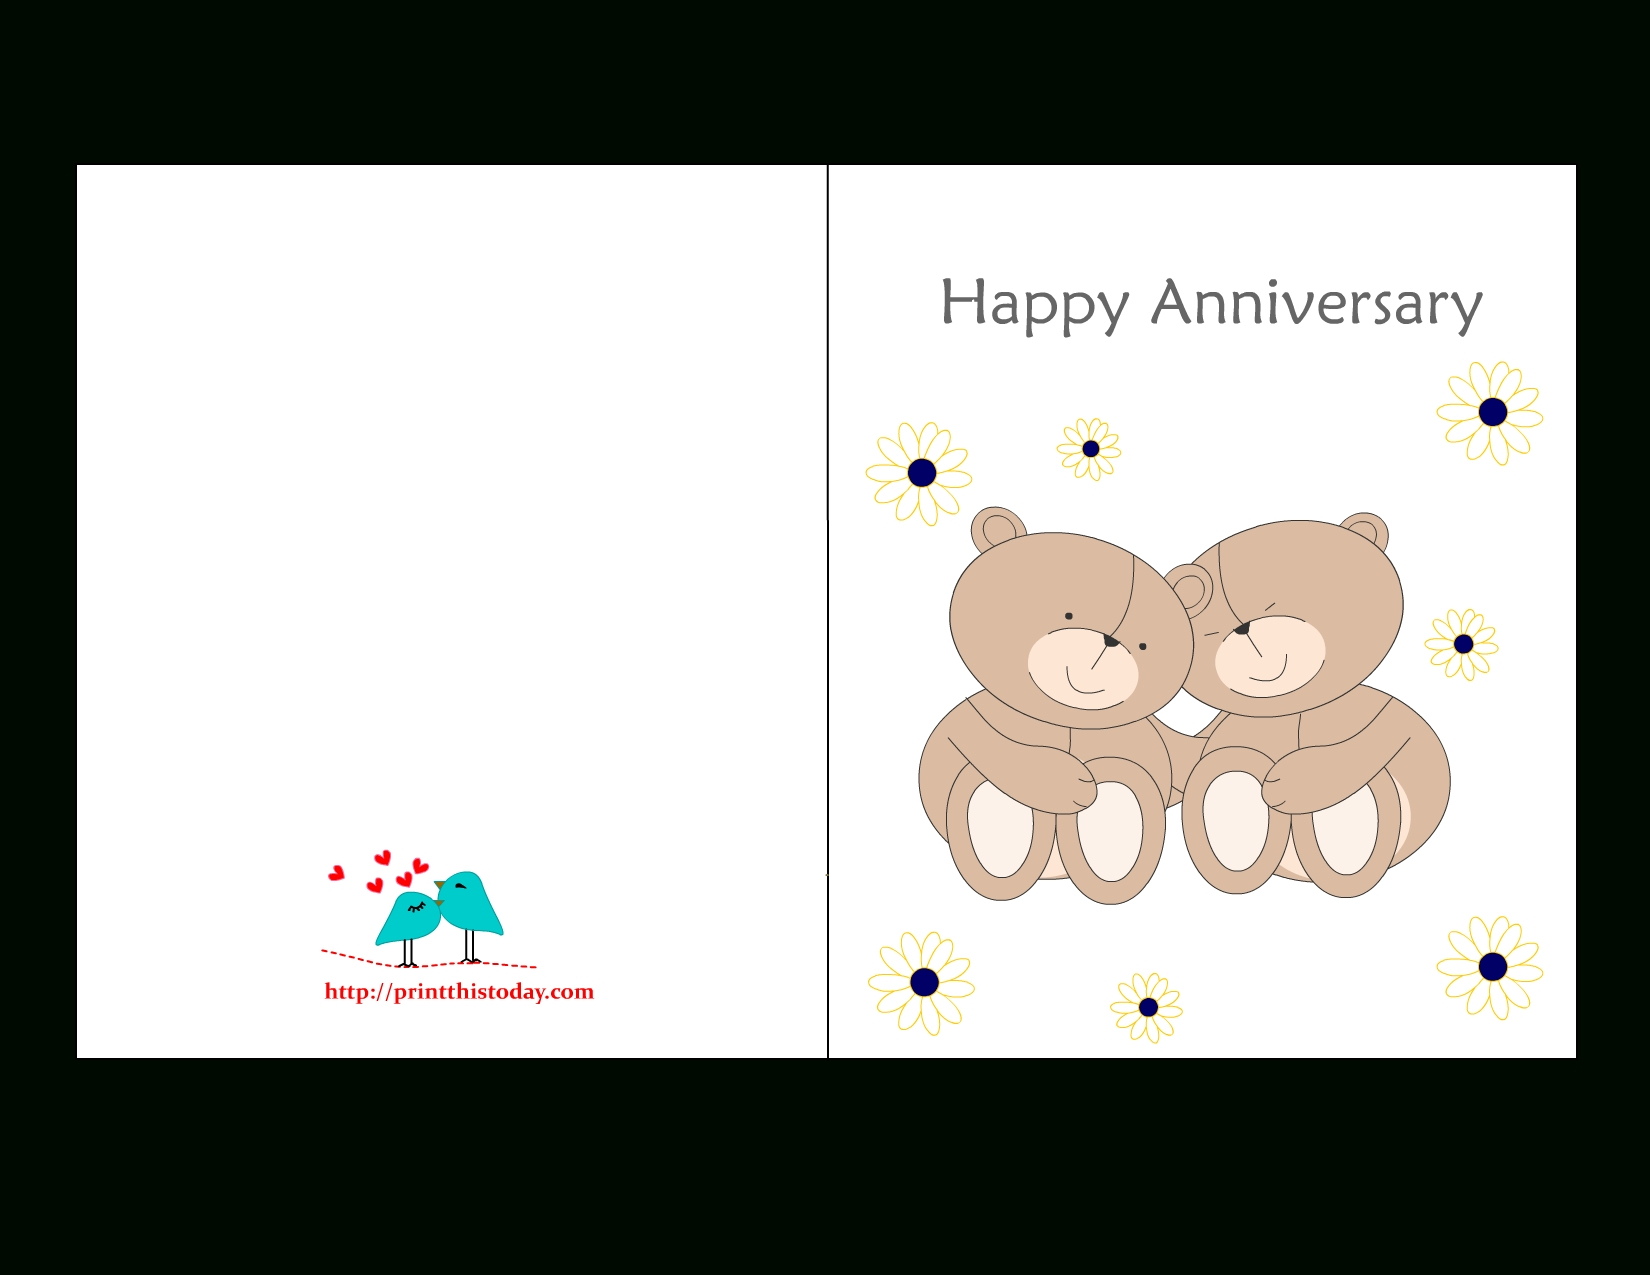 Printable Anniversary Cards For Free | Bestprintable231118 - Free Printable Anniversary Cards